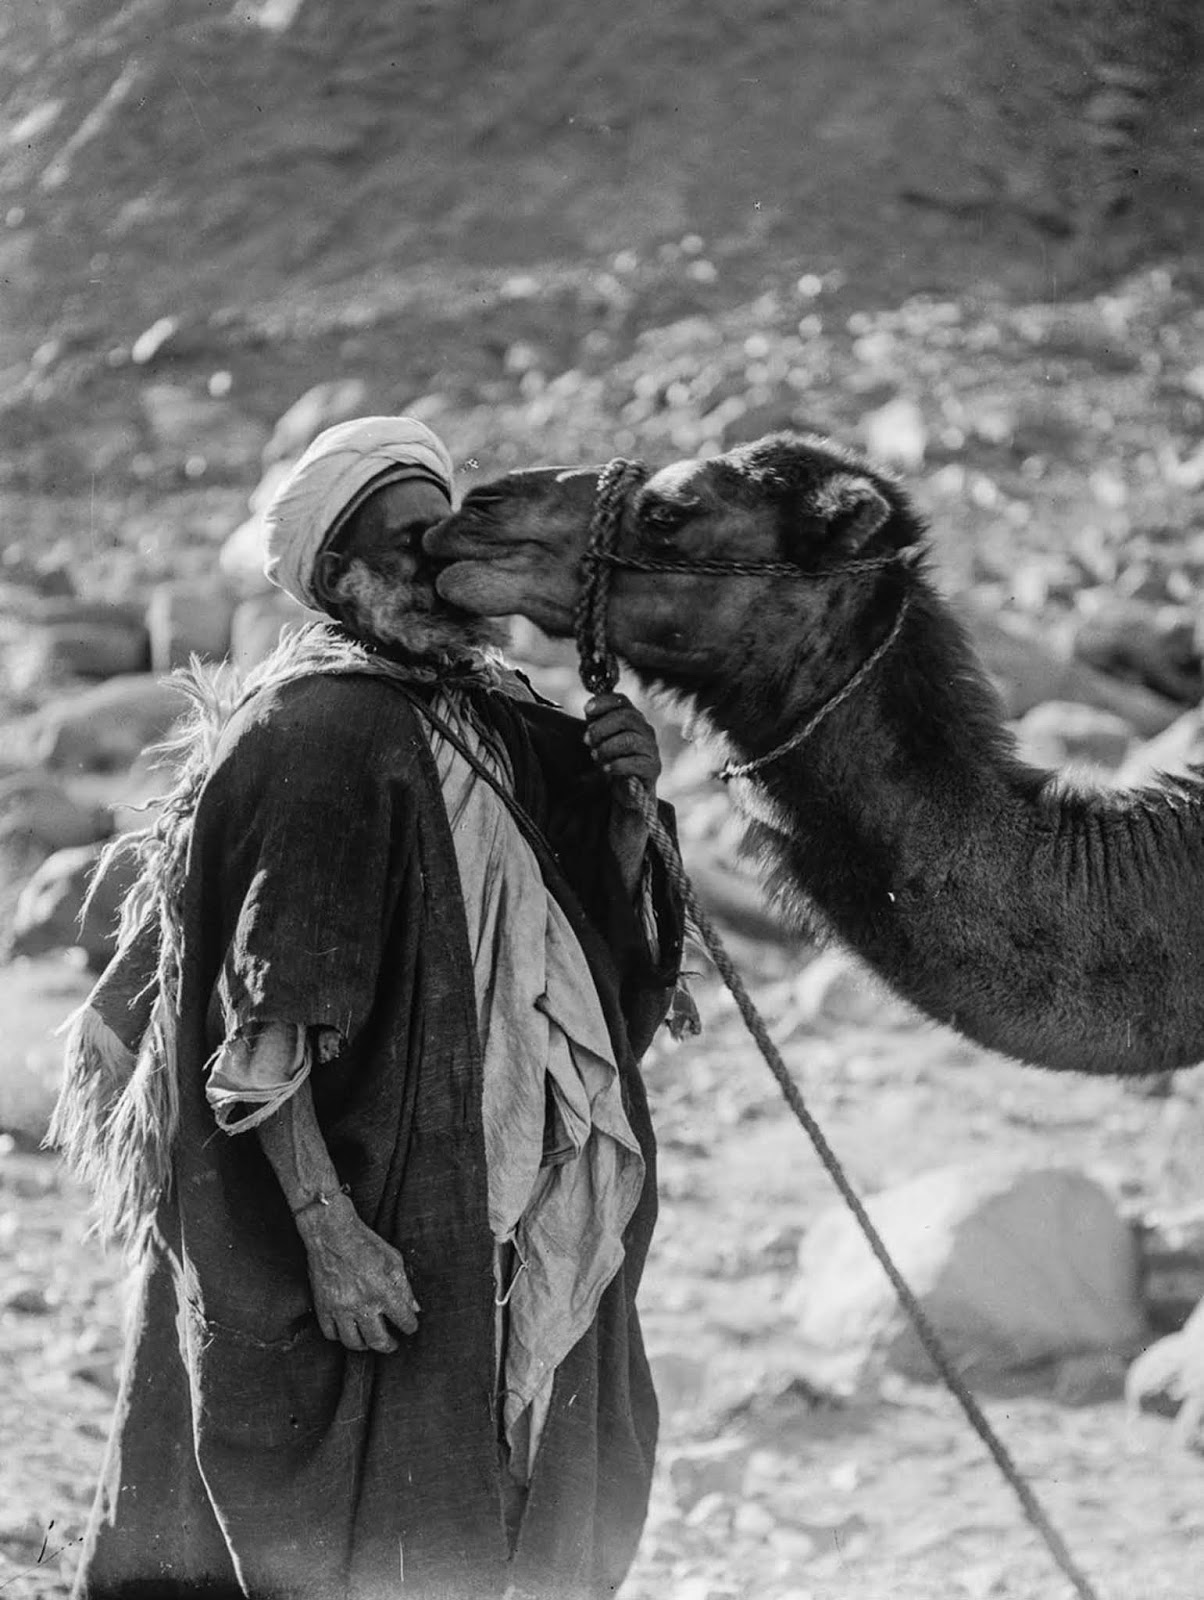 An elderly Bedouin and his camel.